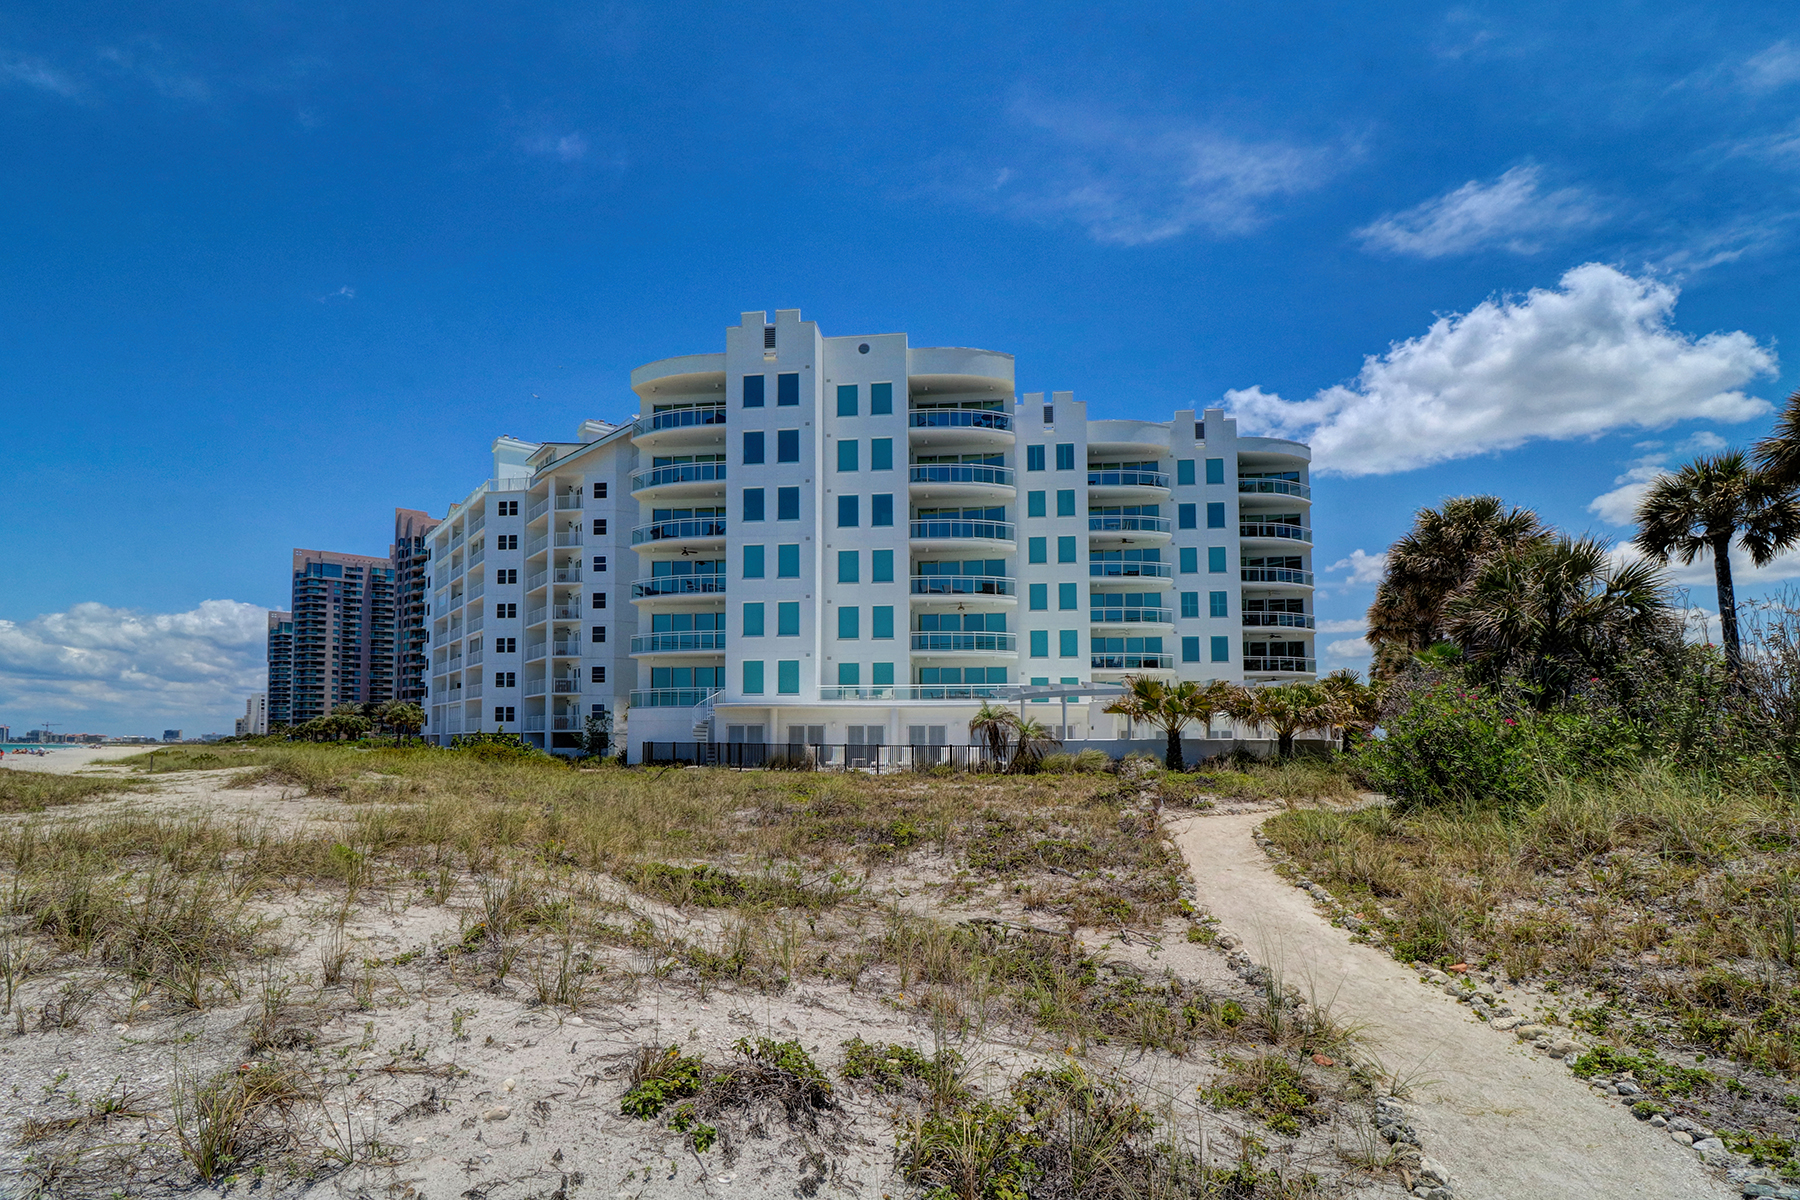 Condominium for Sale at CLEARWATER 1590 Gulf Blvd 203 Clearwater Beach, Florida, 33767 United States